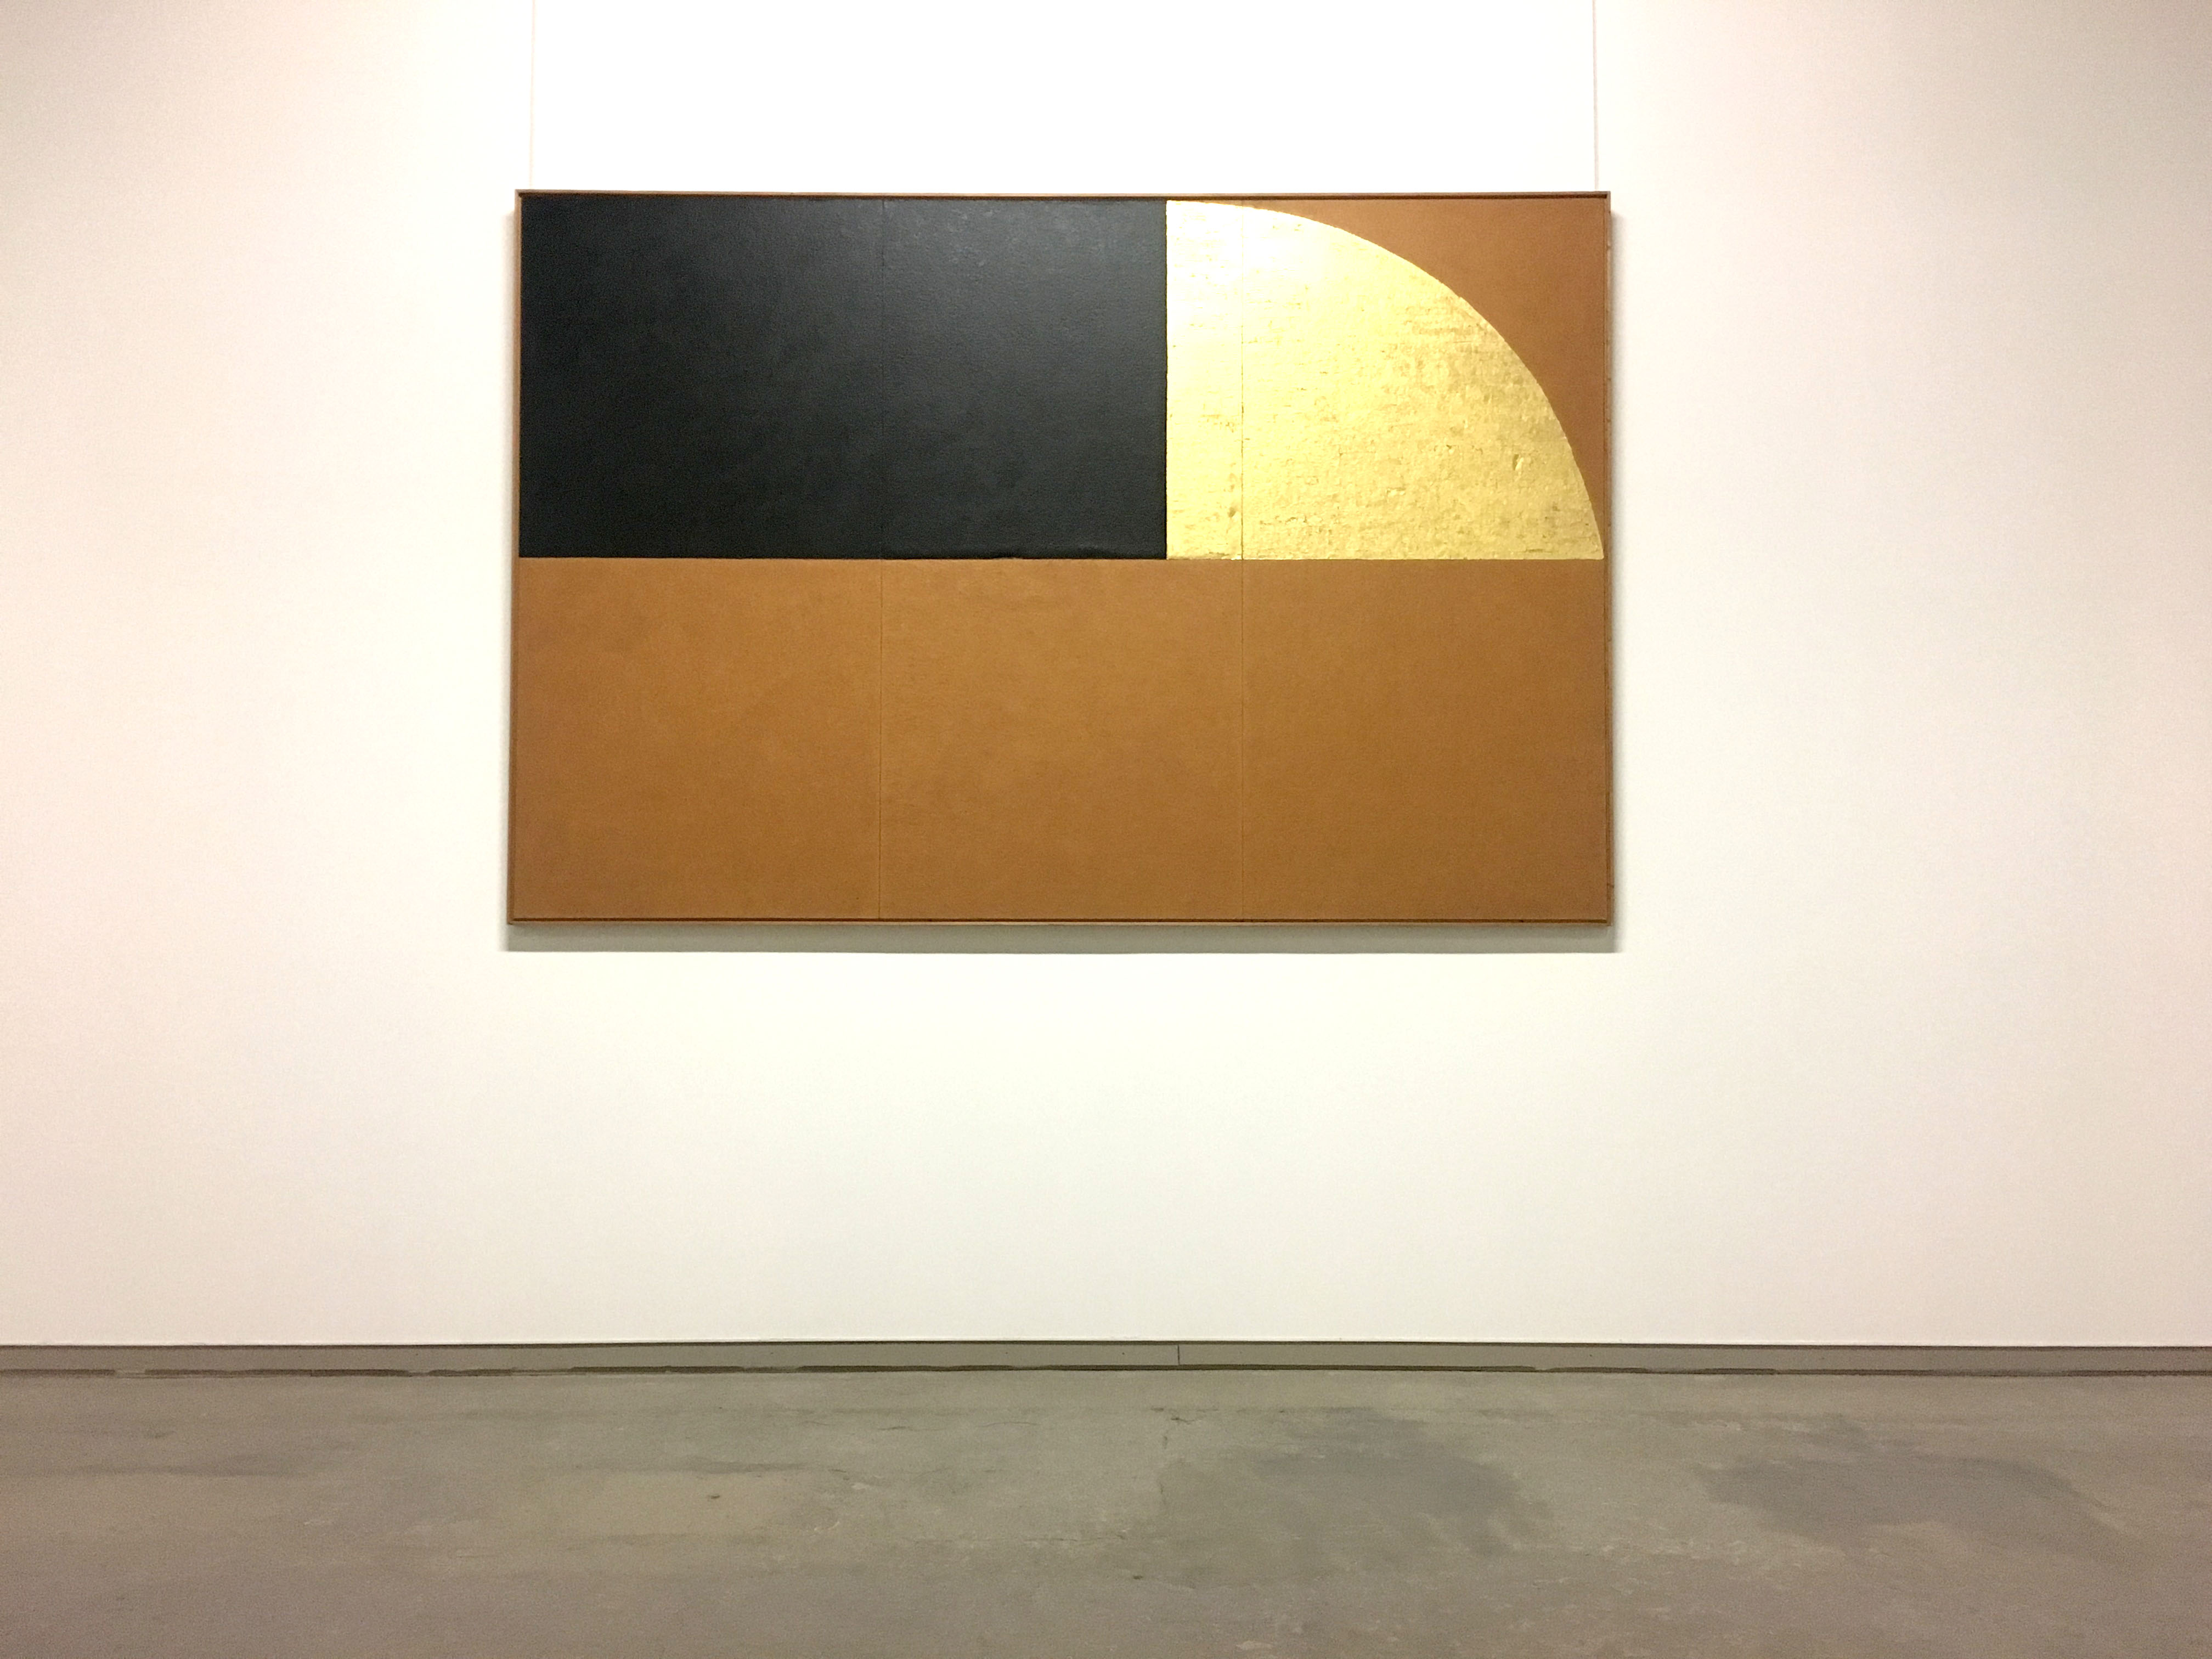 Gold and Black Burri Artwork